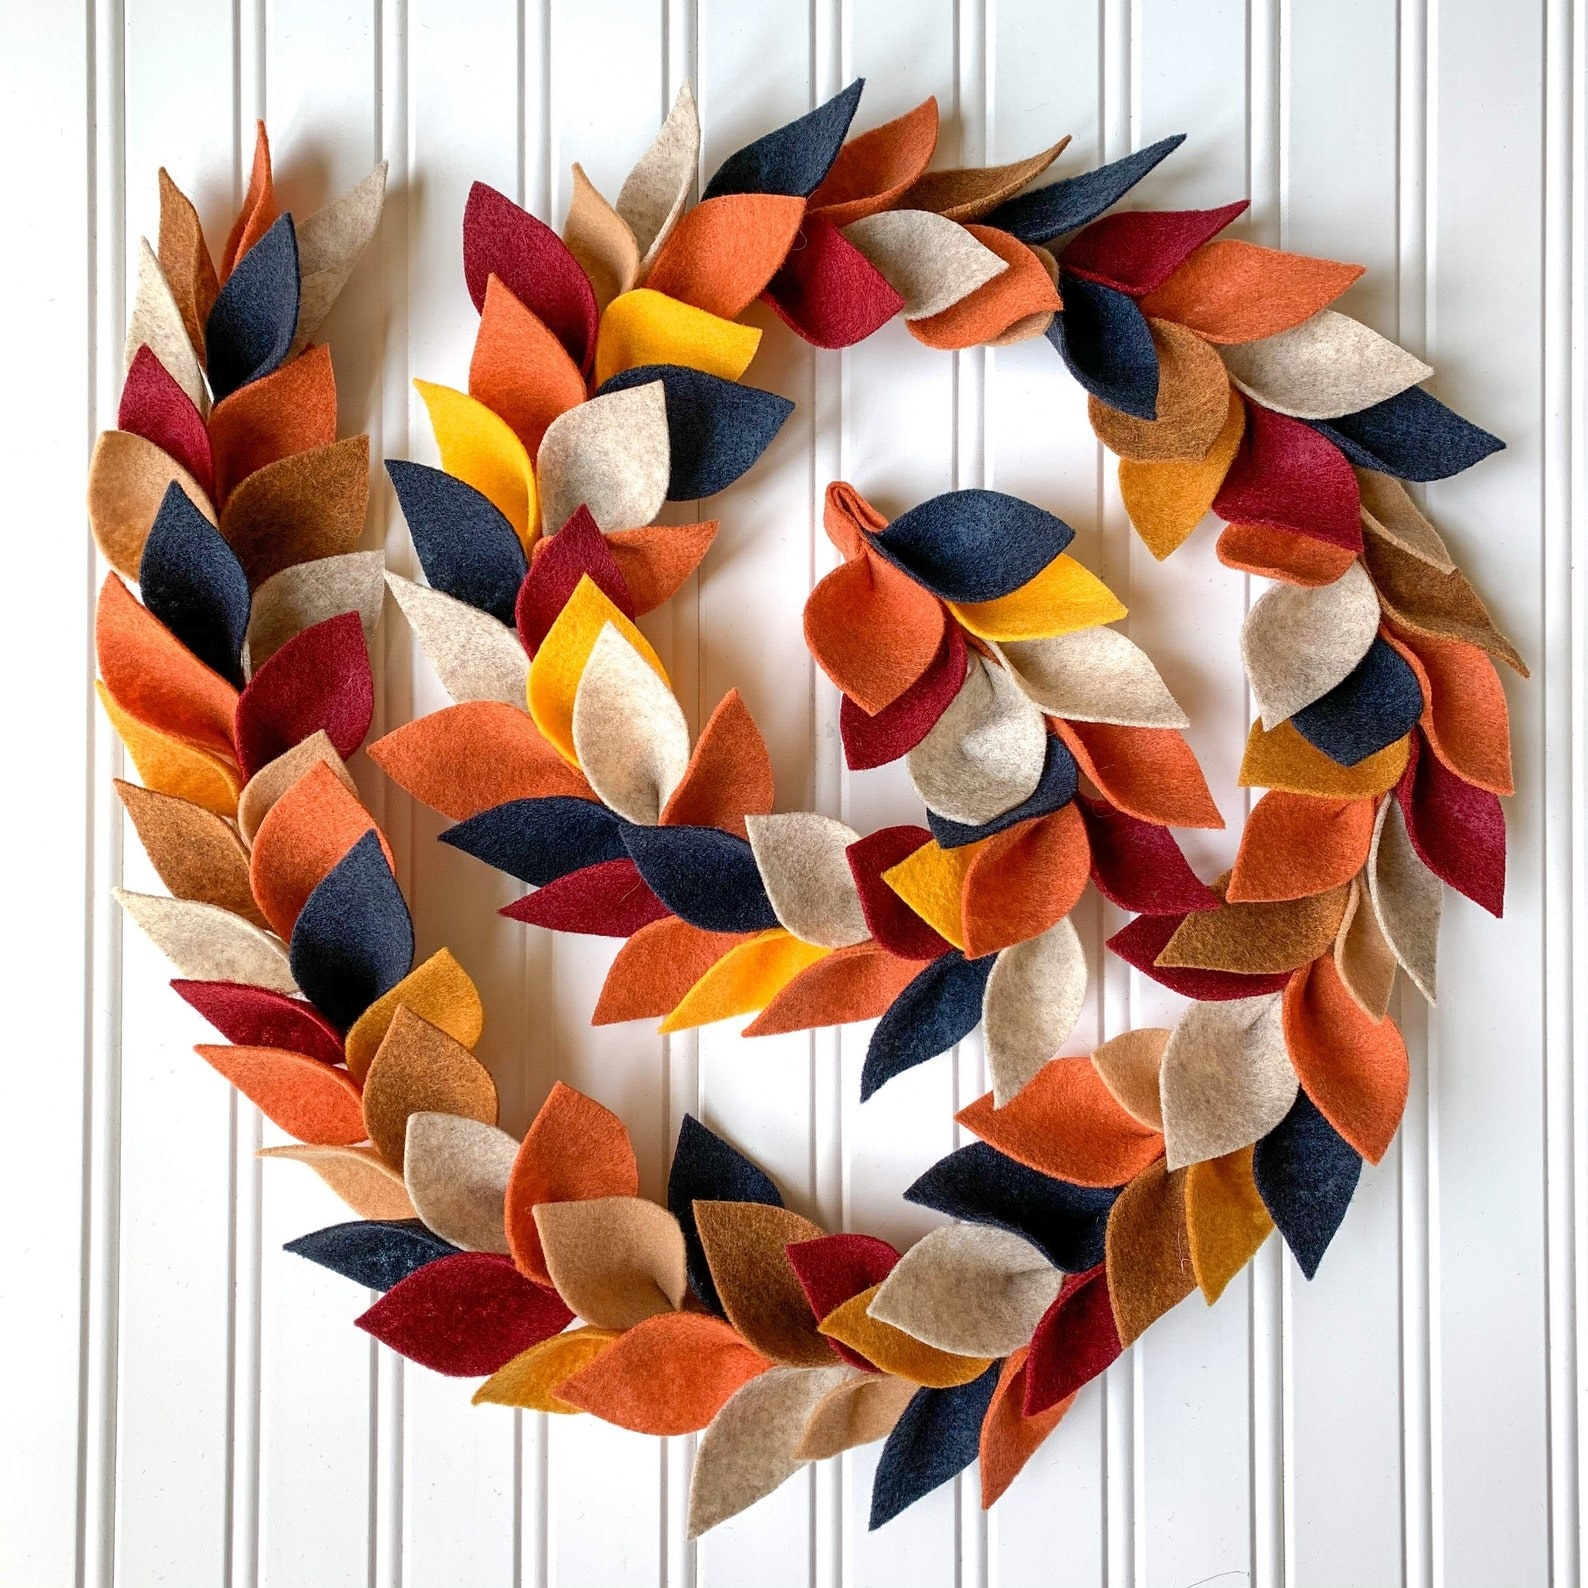 the felt garland with leaves in tan, orange, gold, blue, cream, and red